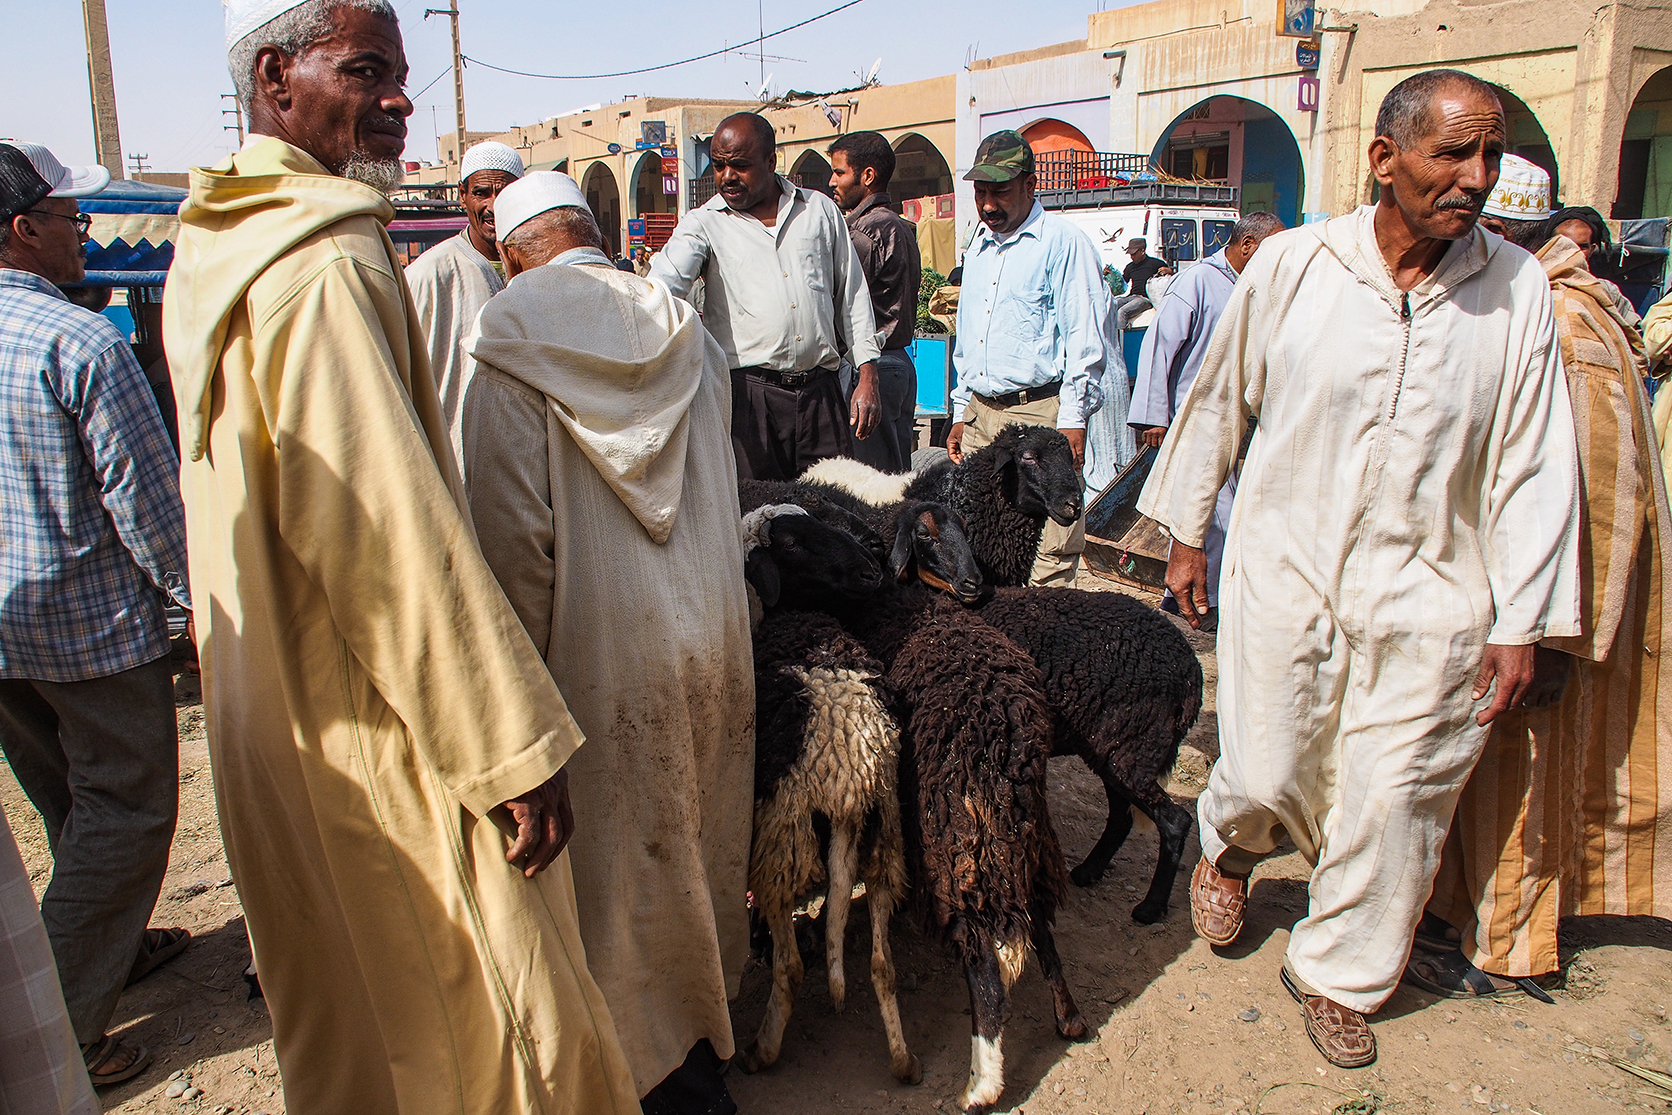 Sheep sales at Rissani Markets in the South.